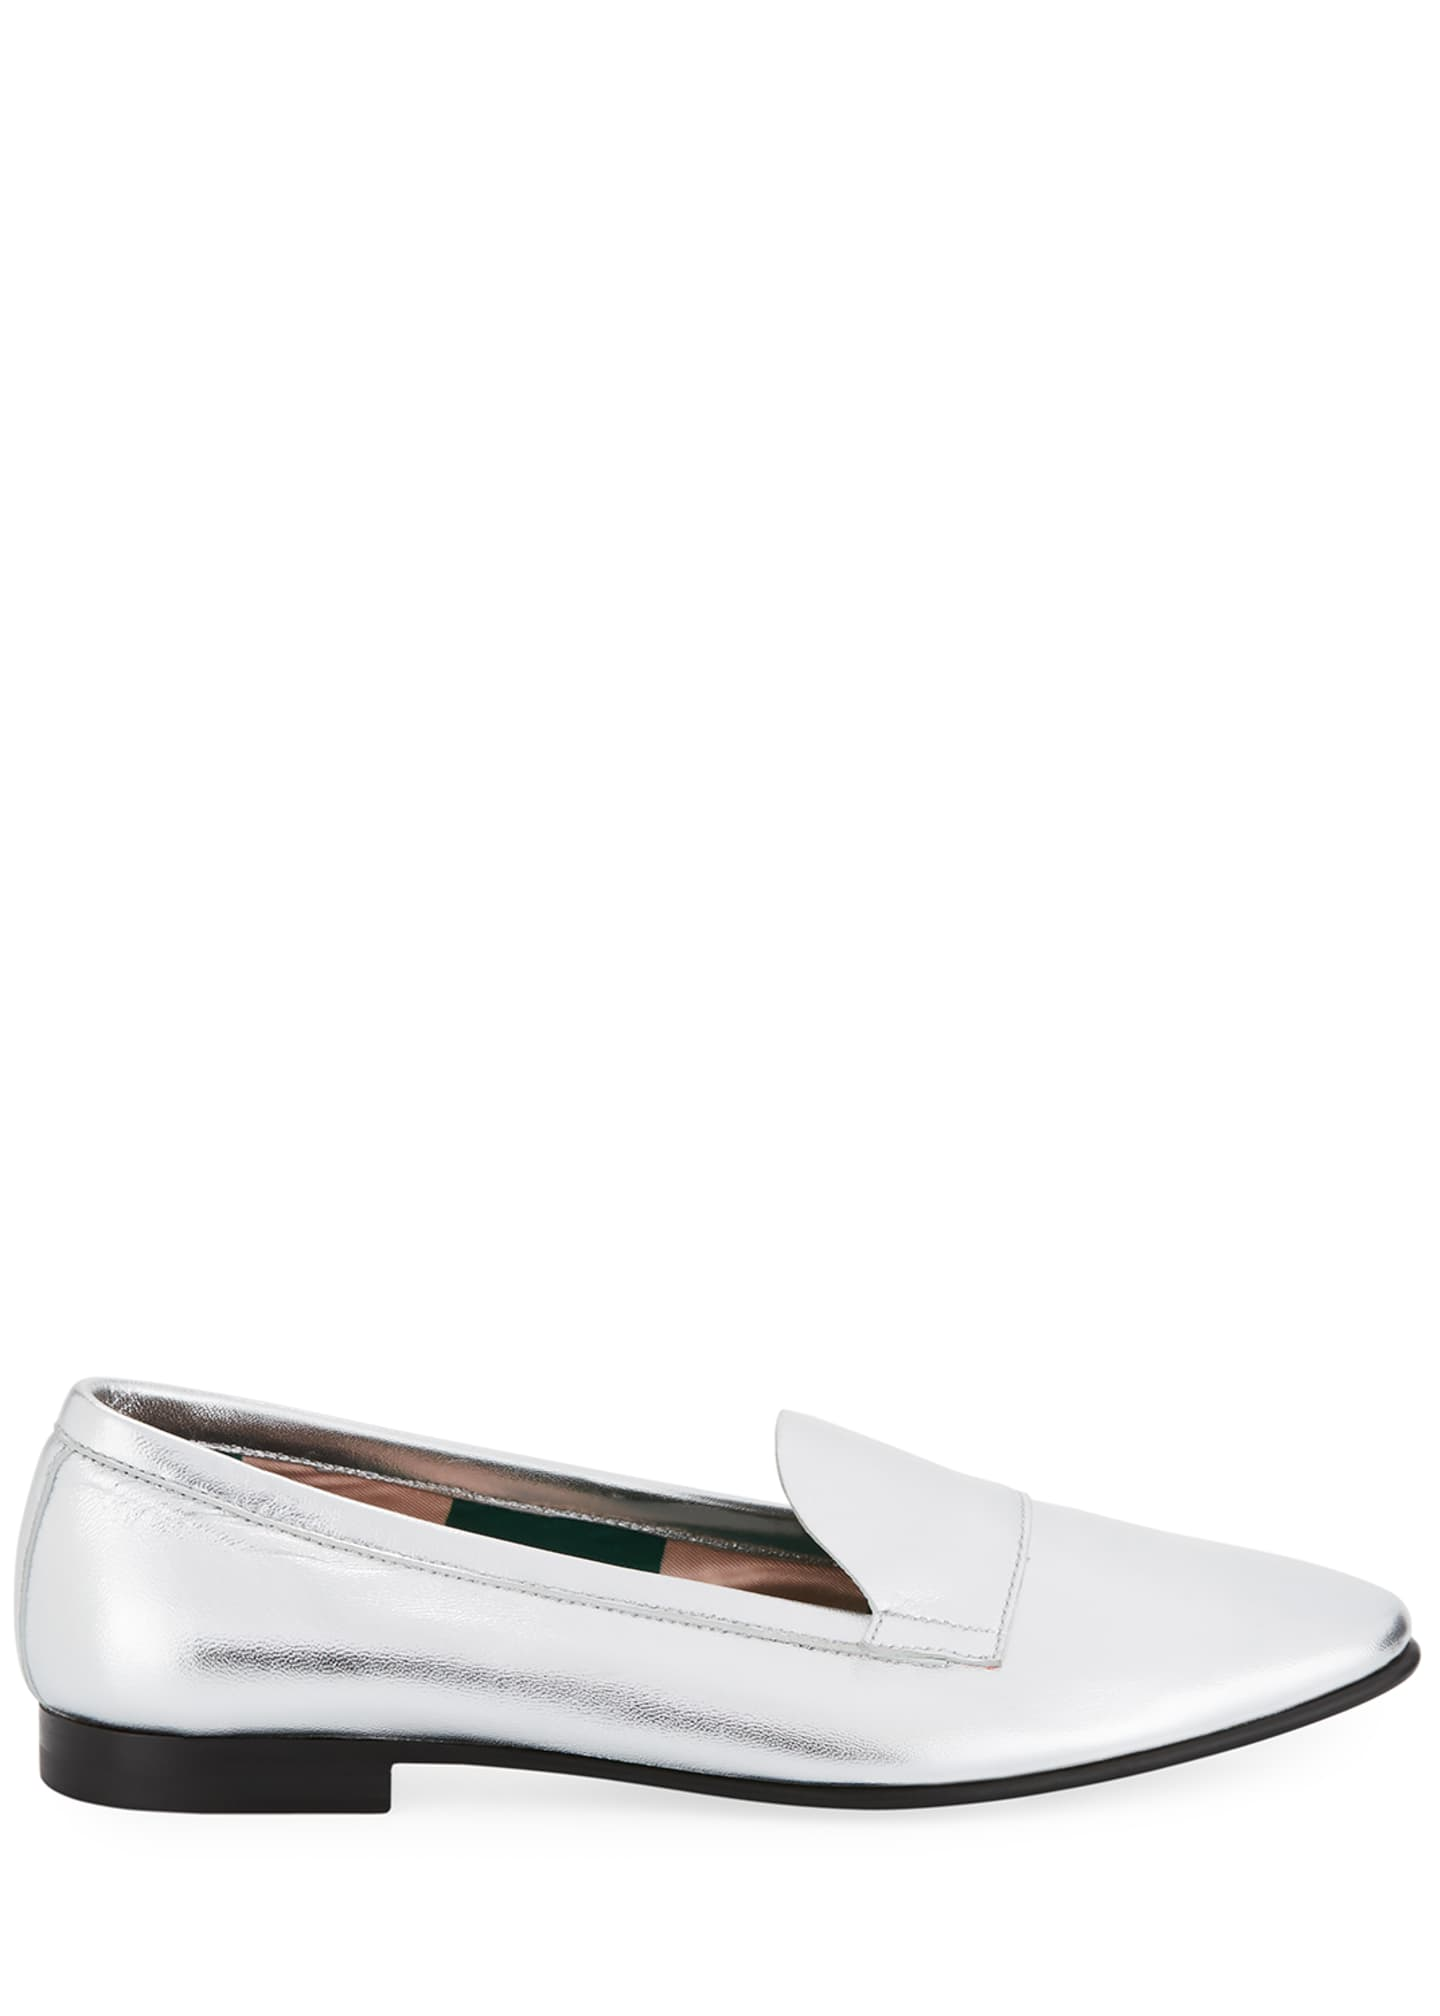 Image 2 of 3: Jacno Metallic Flat Loafers